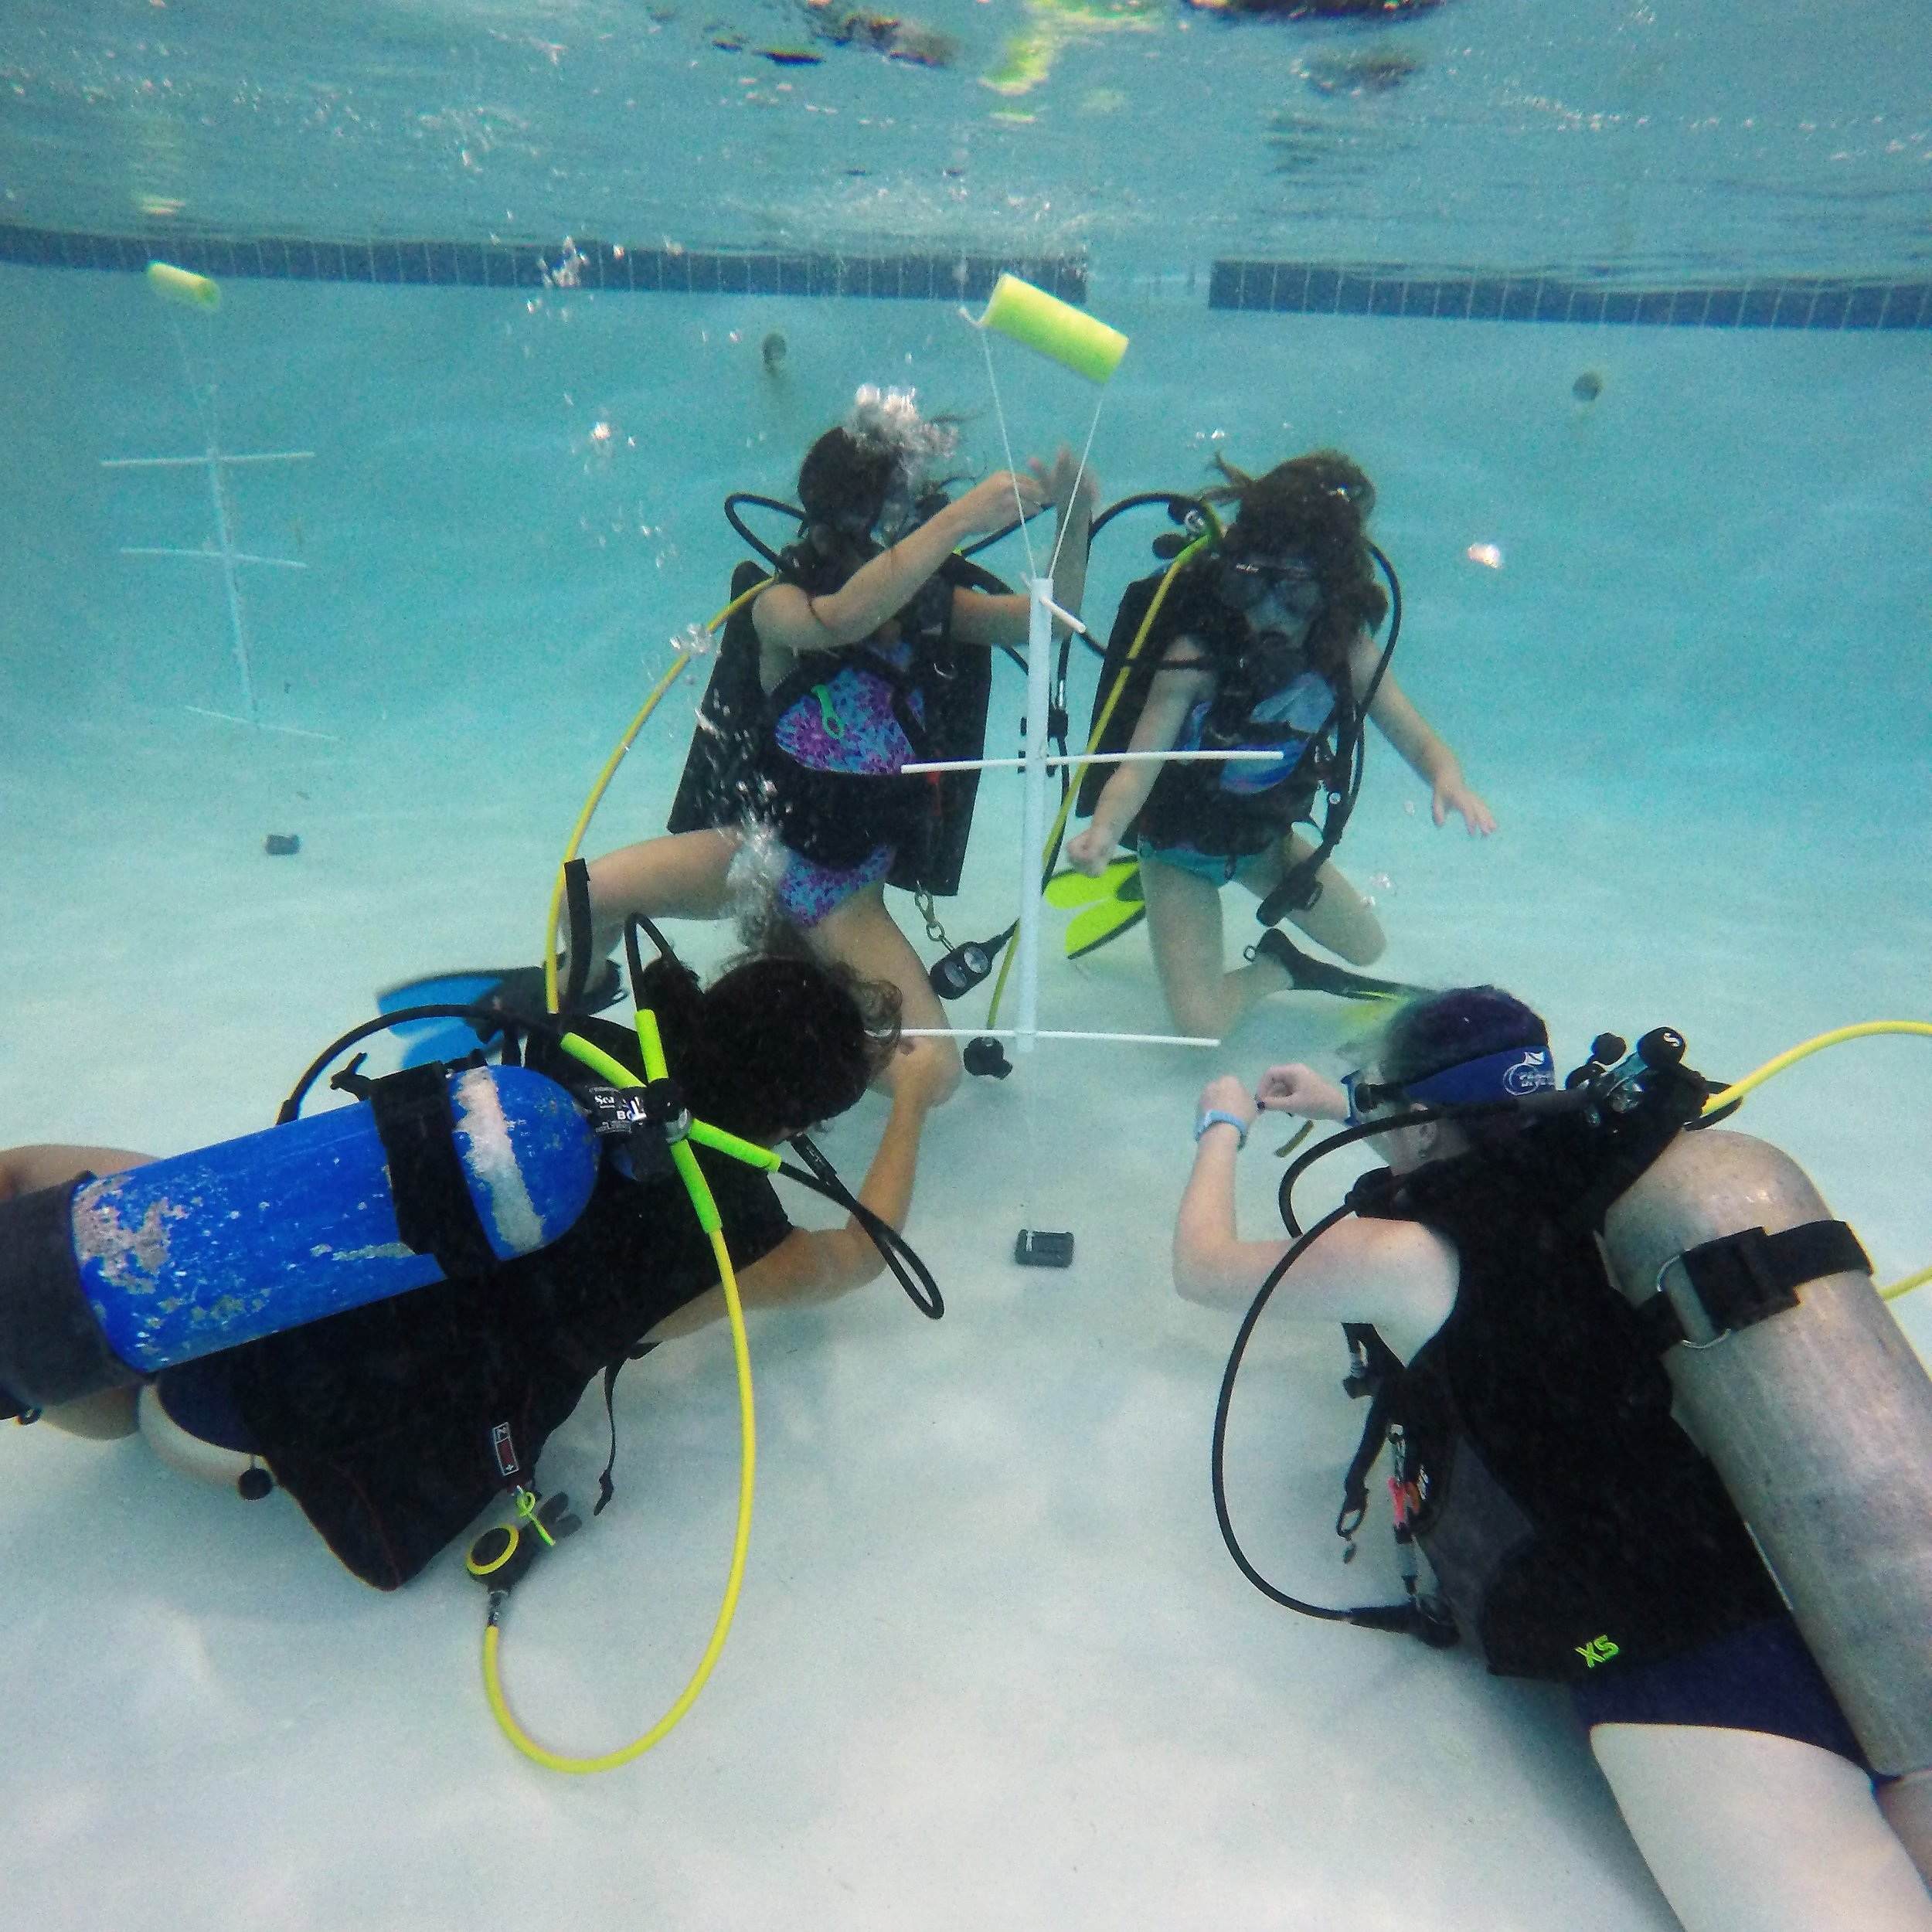 Workshop participants learned the basics of scuba diving and built PVC coral trees, which are widely used in coral reef restoration projects.